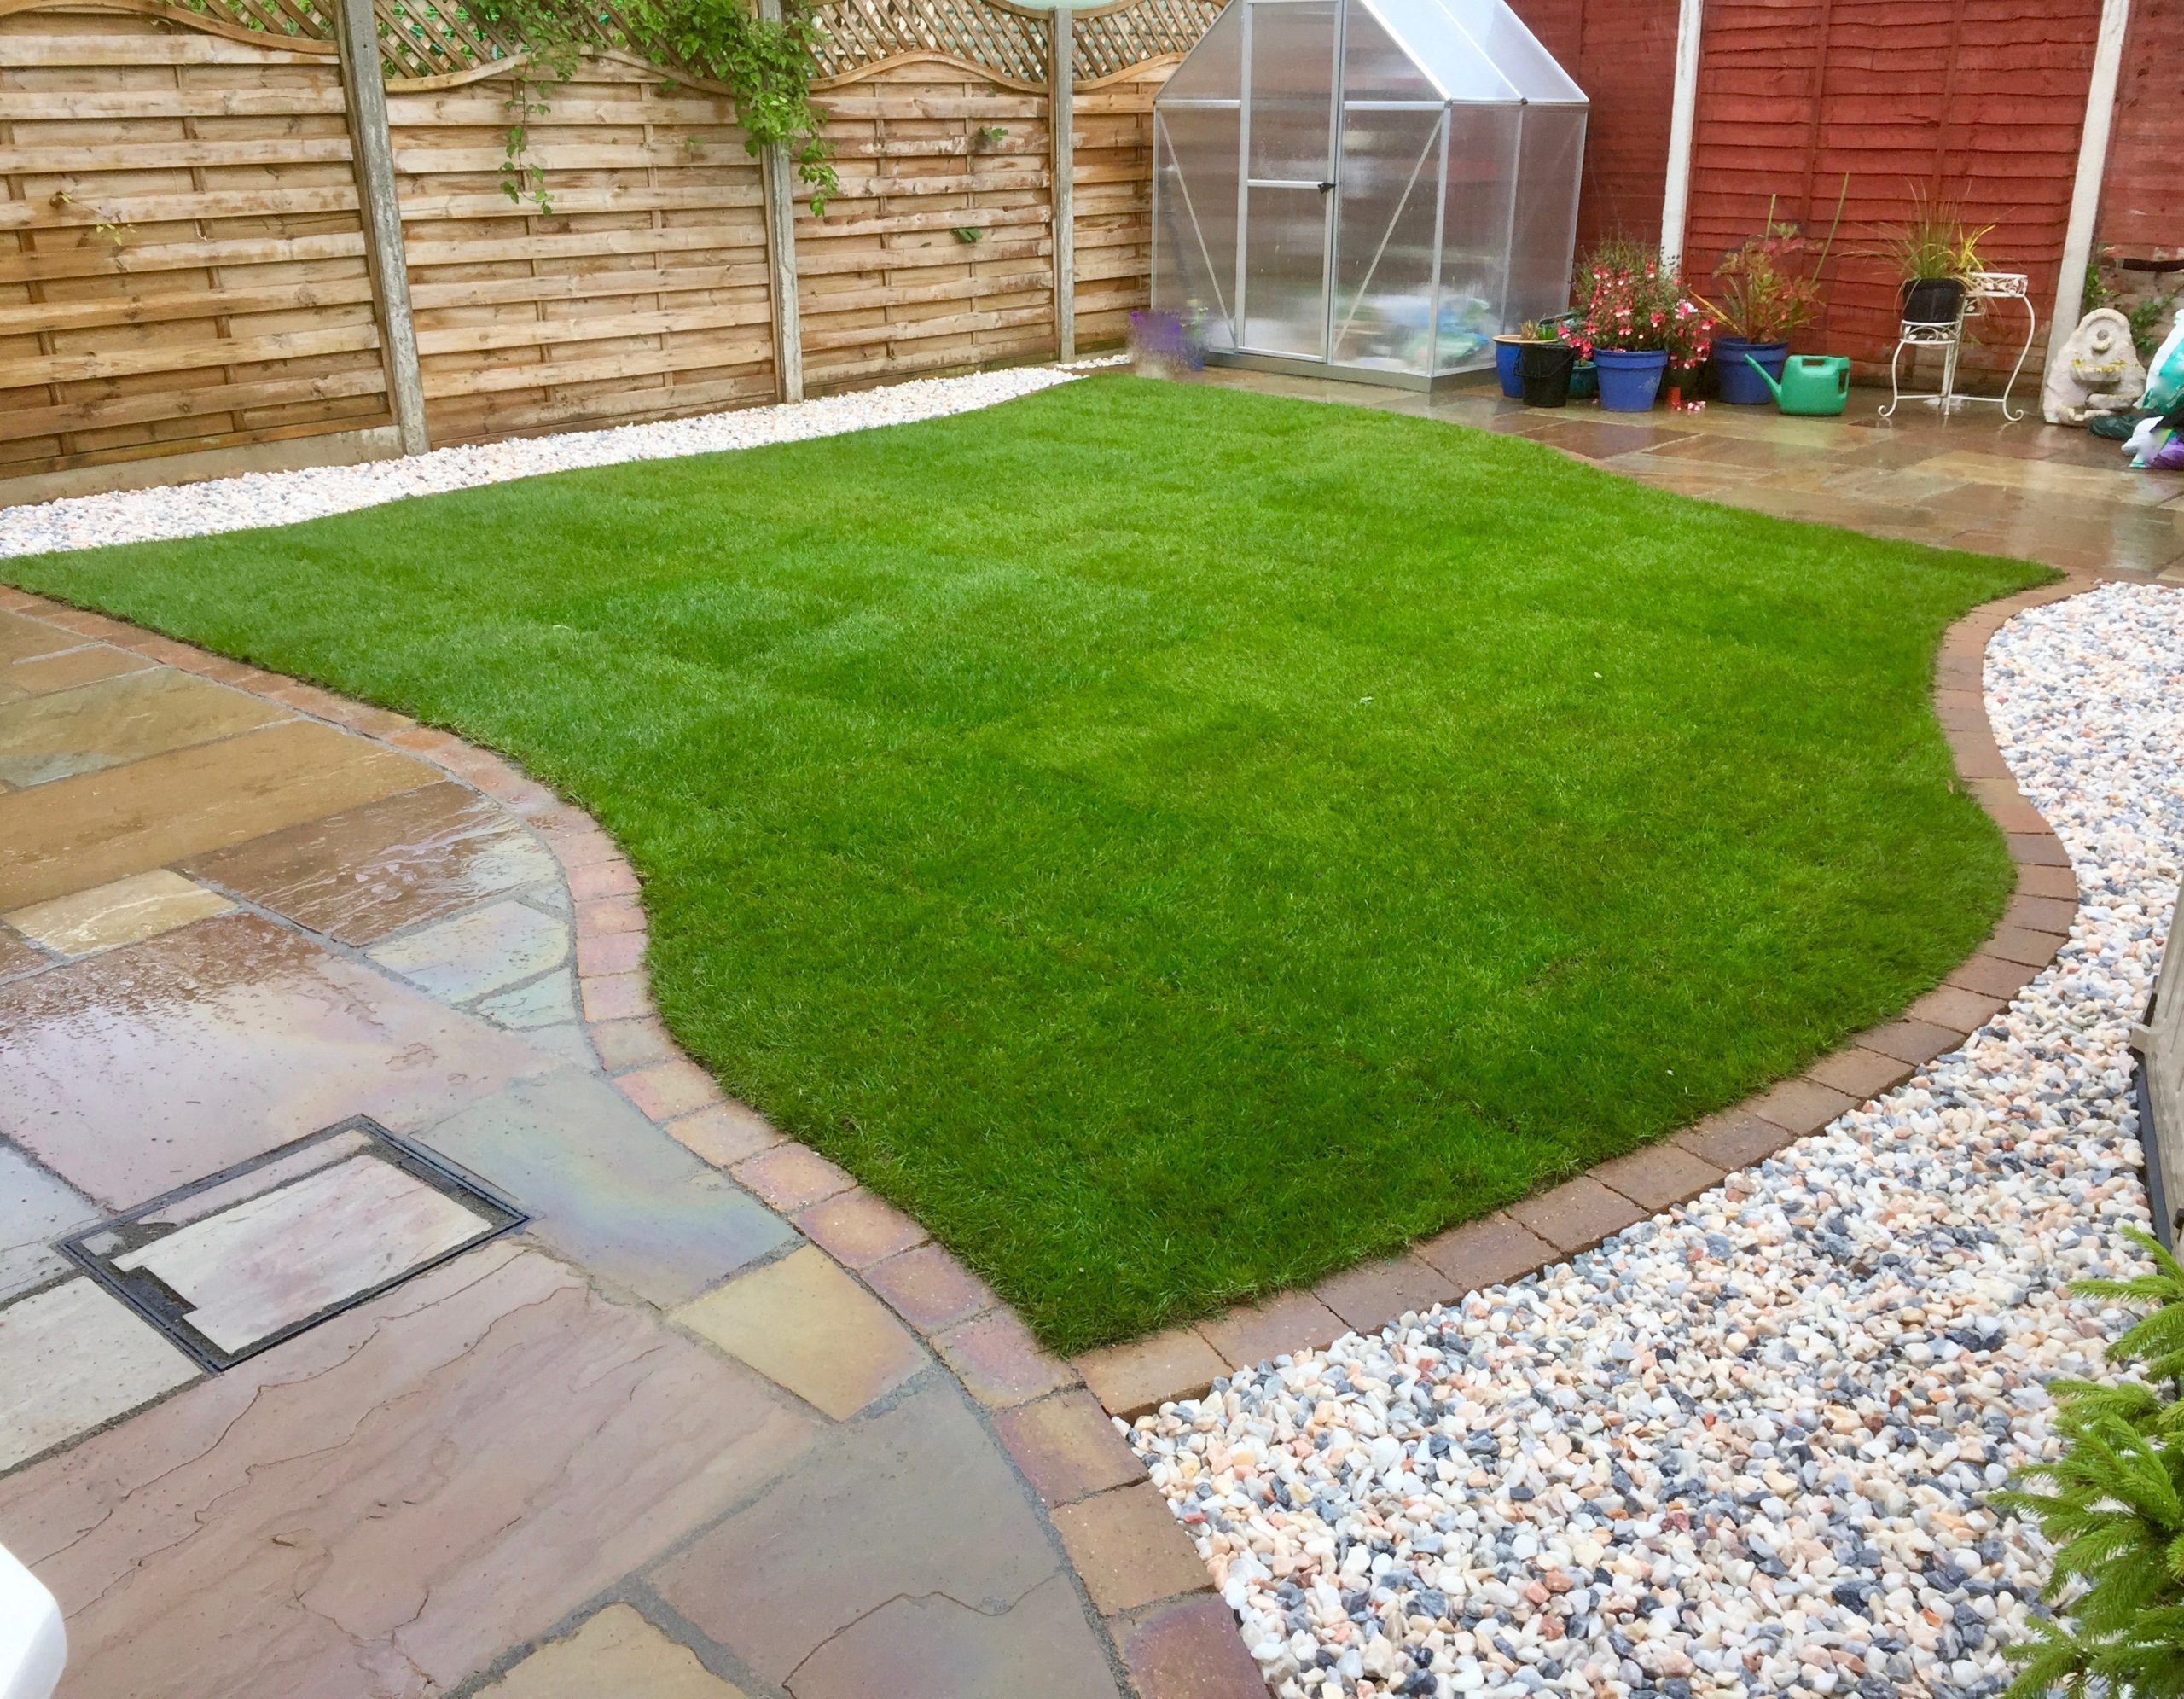 Garden Turfing and Lawns in Cambridge